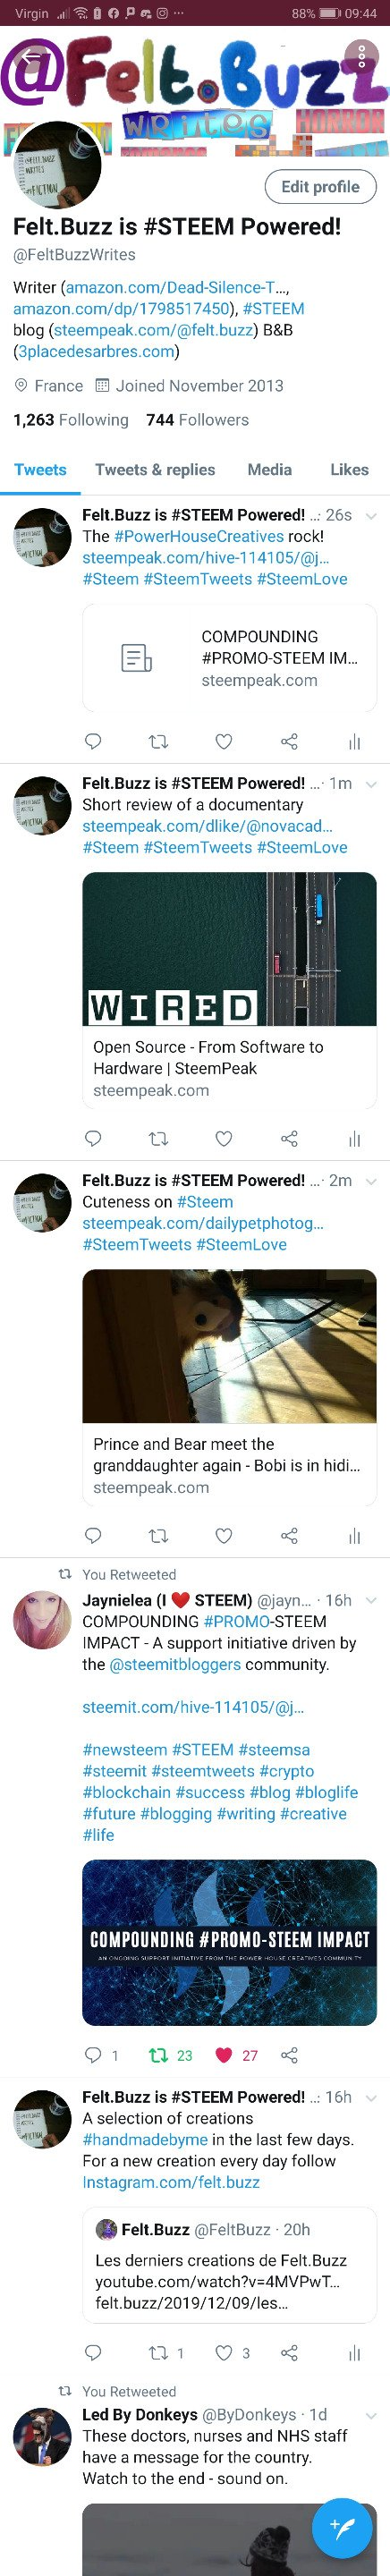 Screenshot_20191210_094435_com.twitter.android.jpg